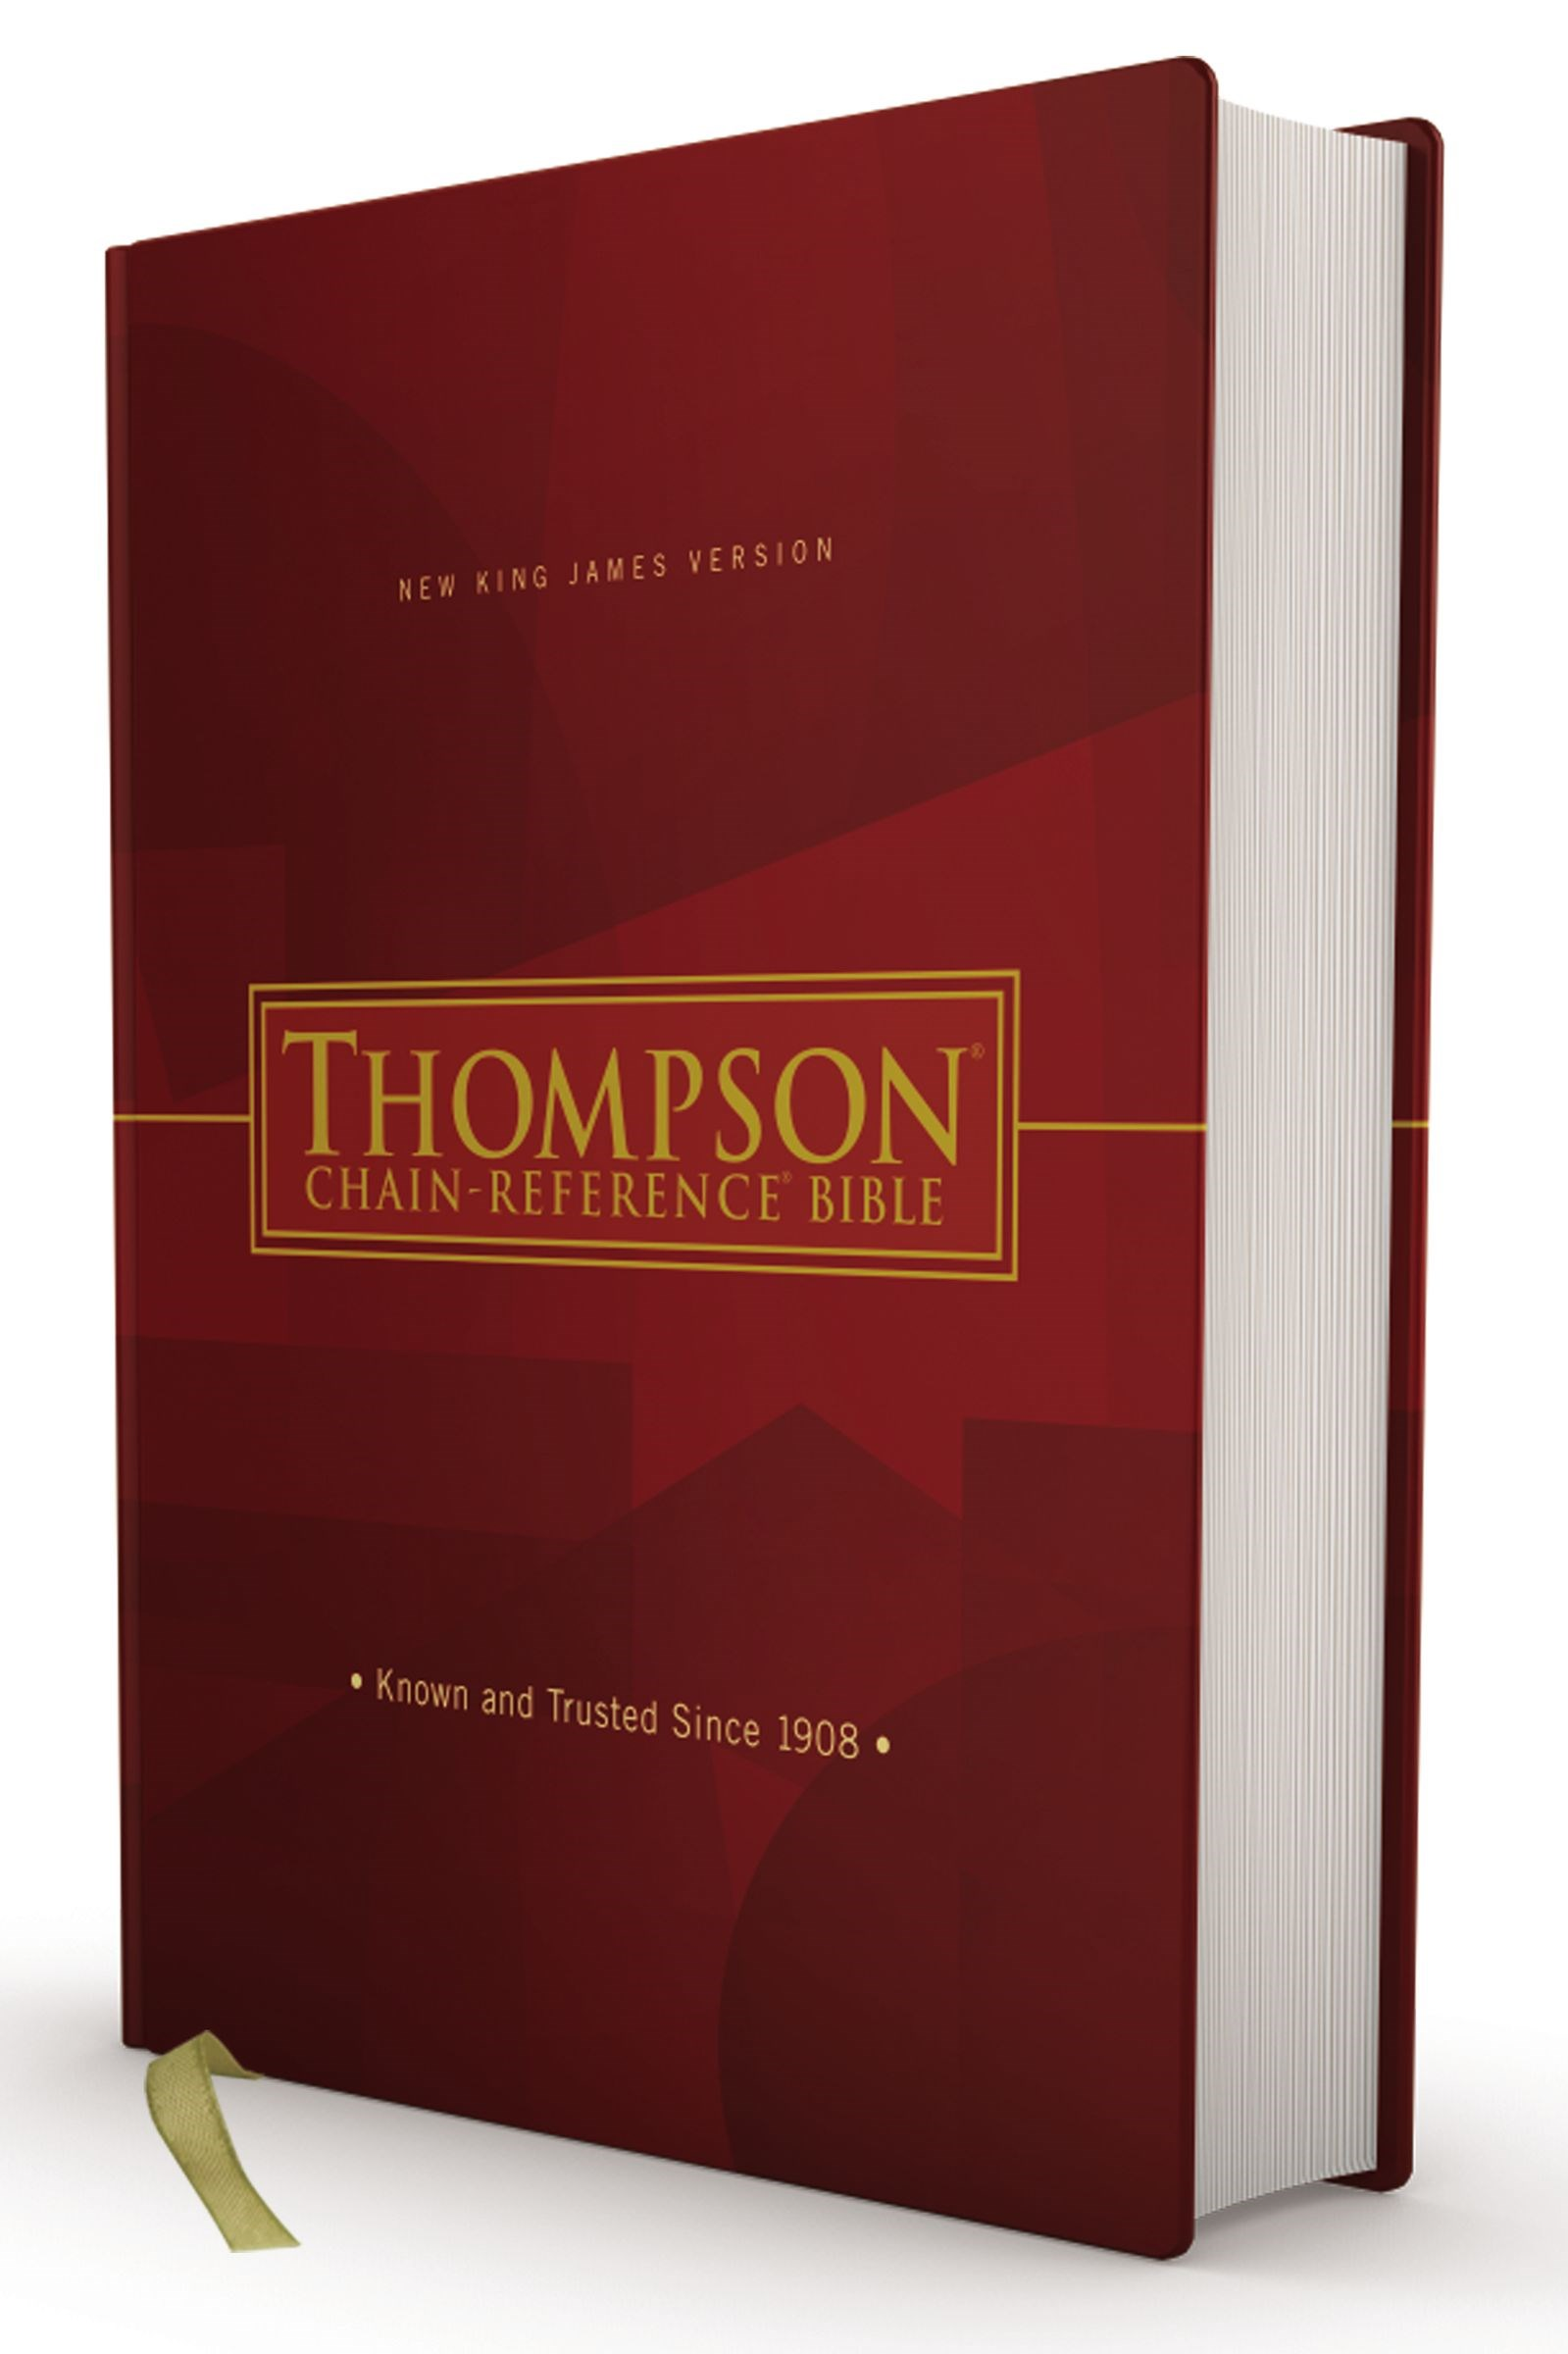 NKJV Thompson Chain-Reference Bible-Hardcover